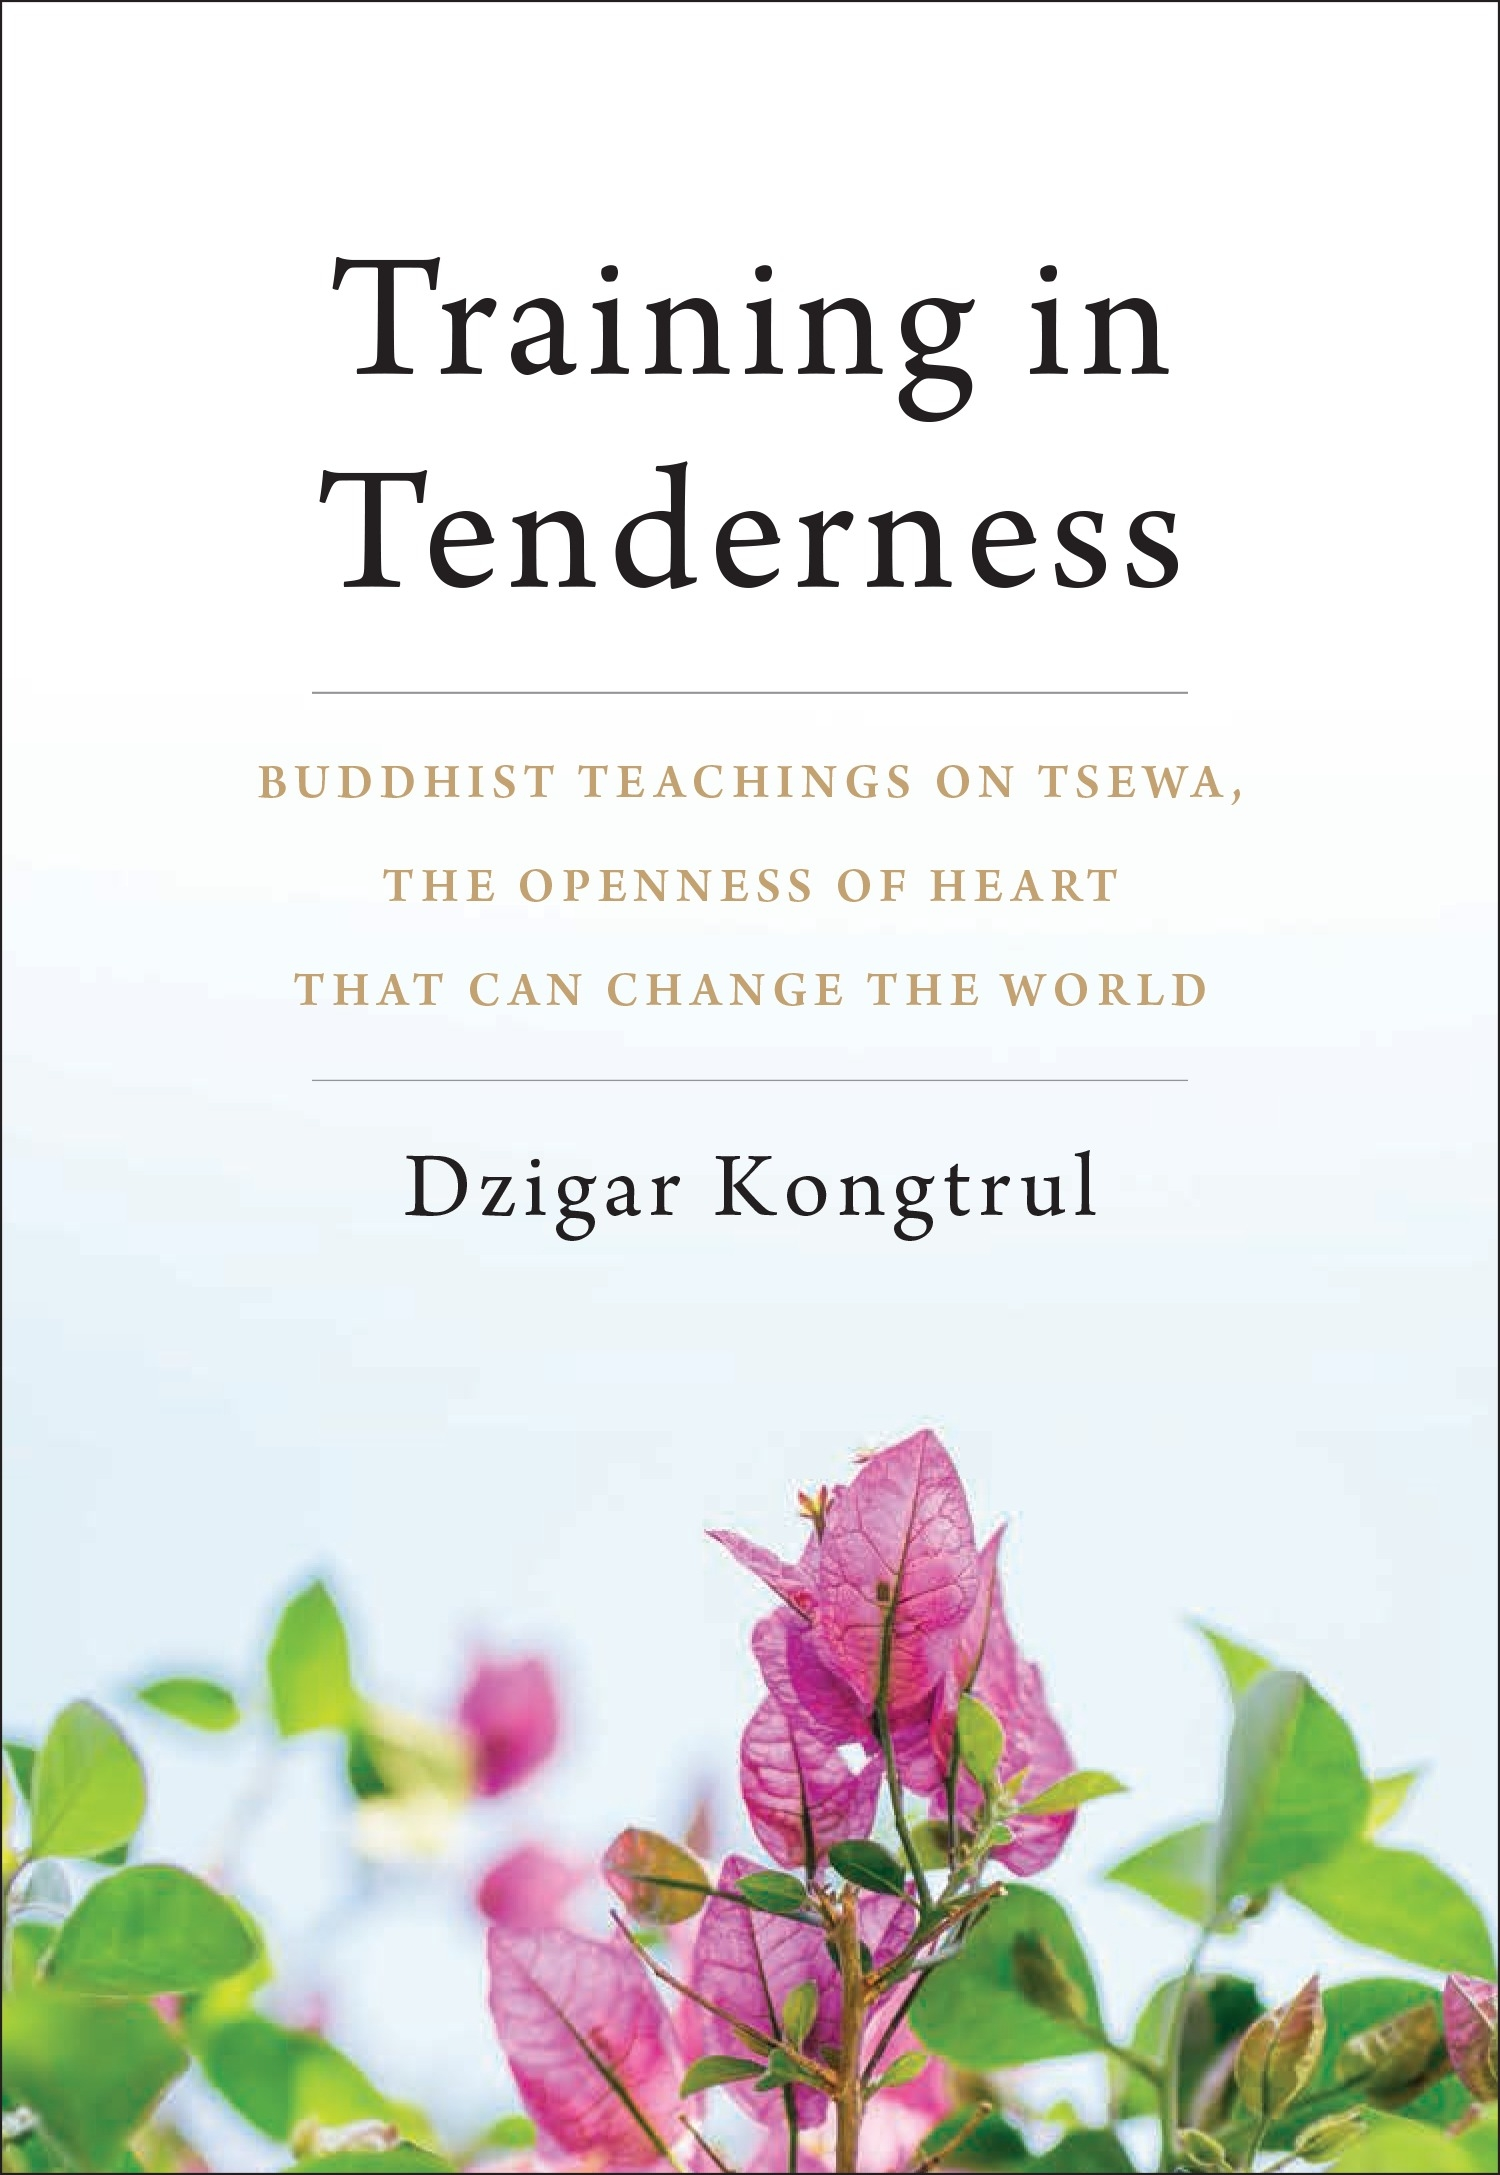 Training in Tenderness: Buddhist Teachings on Tsewa, the Openness of Heart That Can Change the World